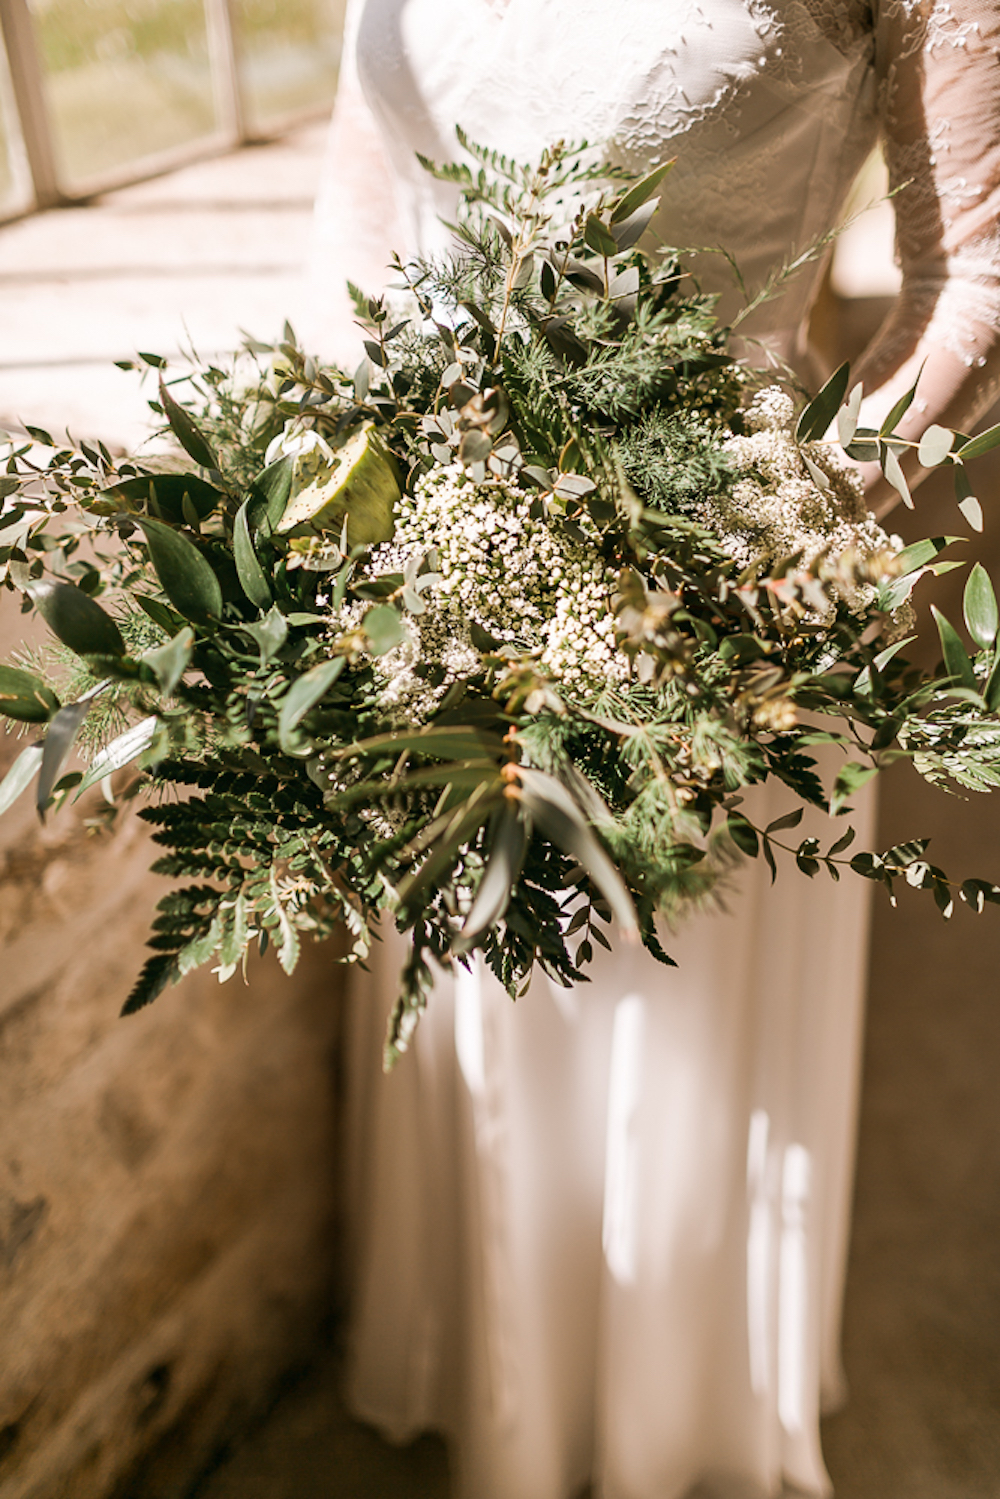 parisian-inspired-blog-mariage-shooting-inspiration-vegetal-abbaye-trois-fontaines-marne-cg-photographie-27.jpg